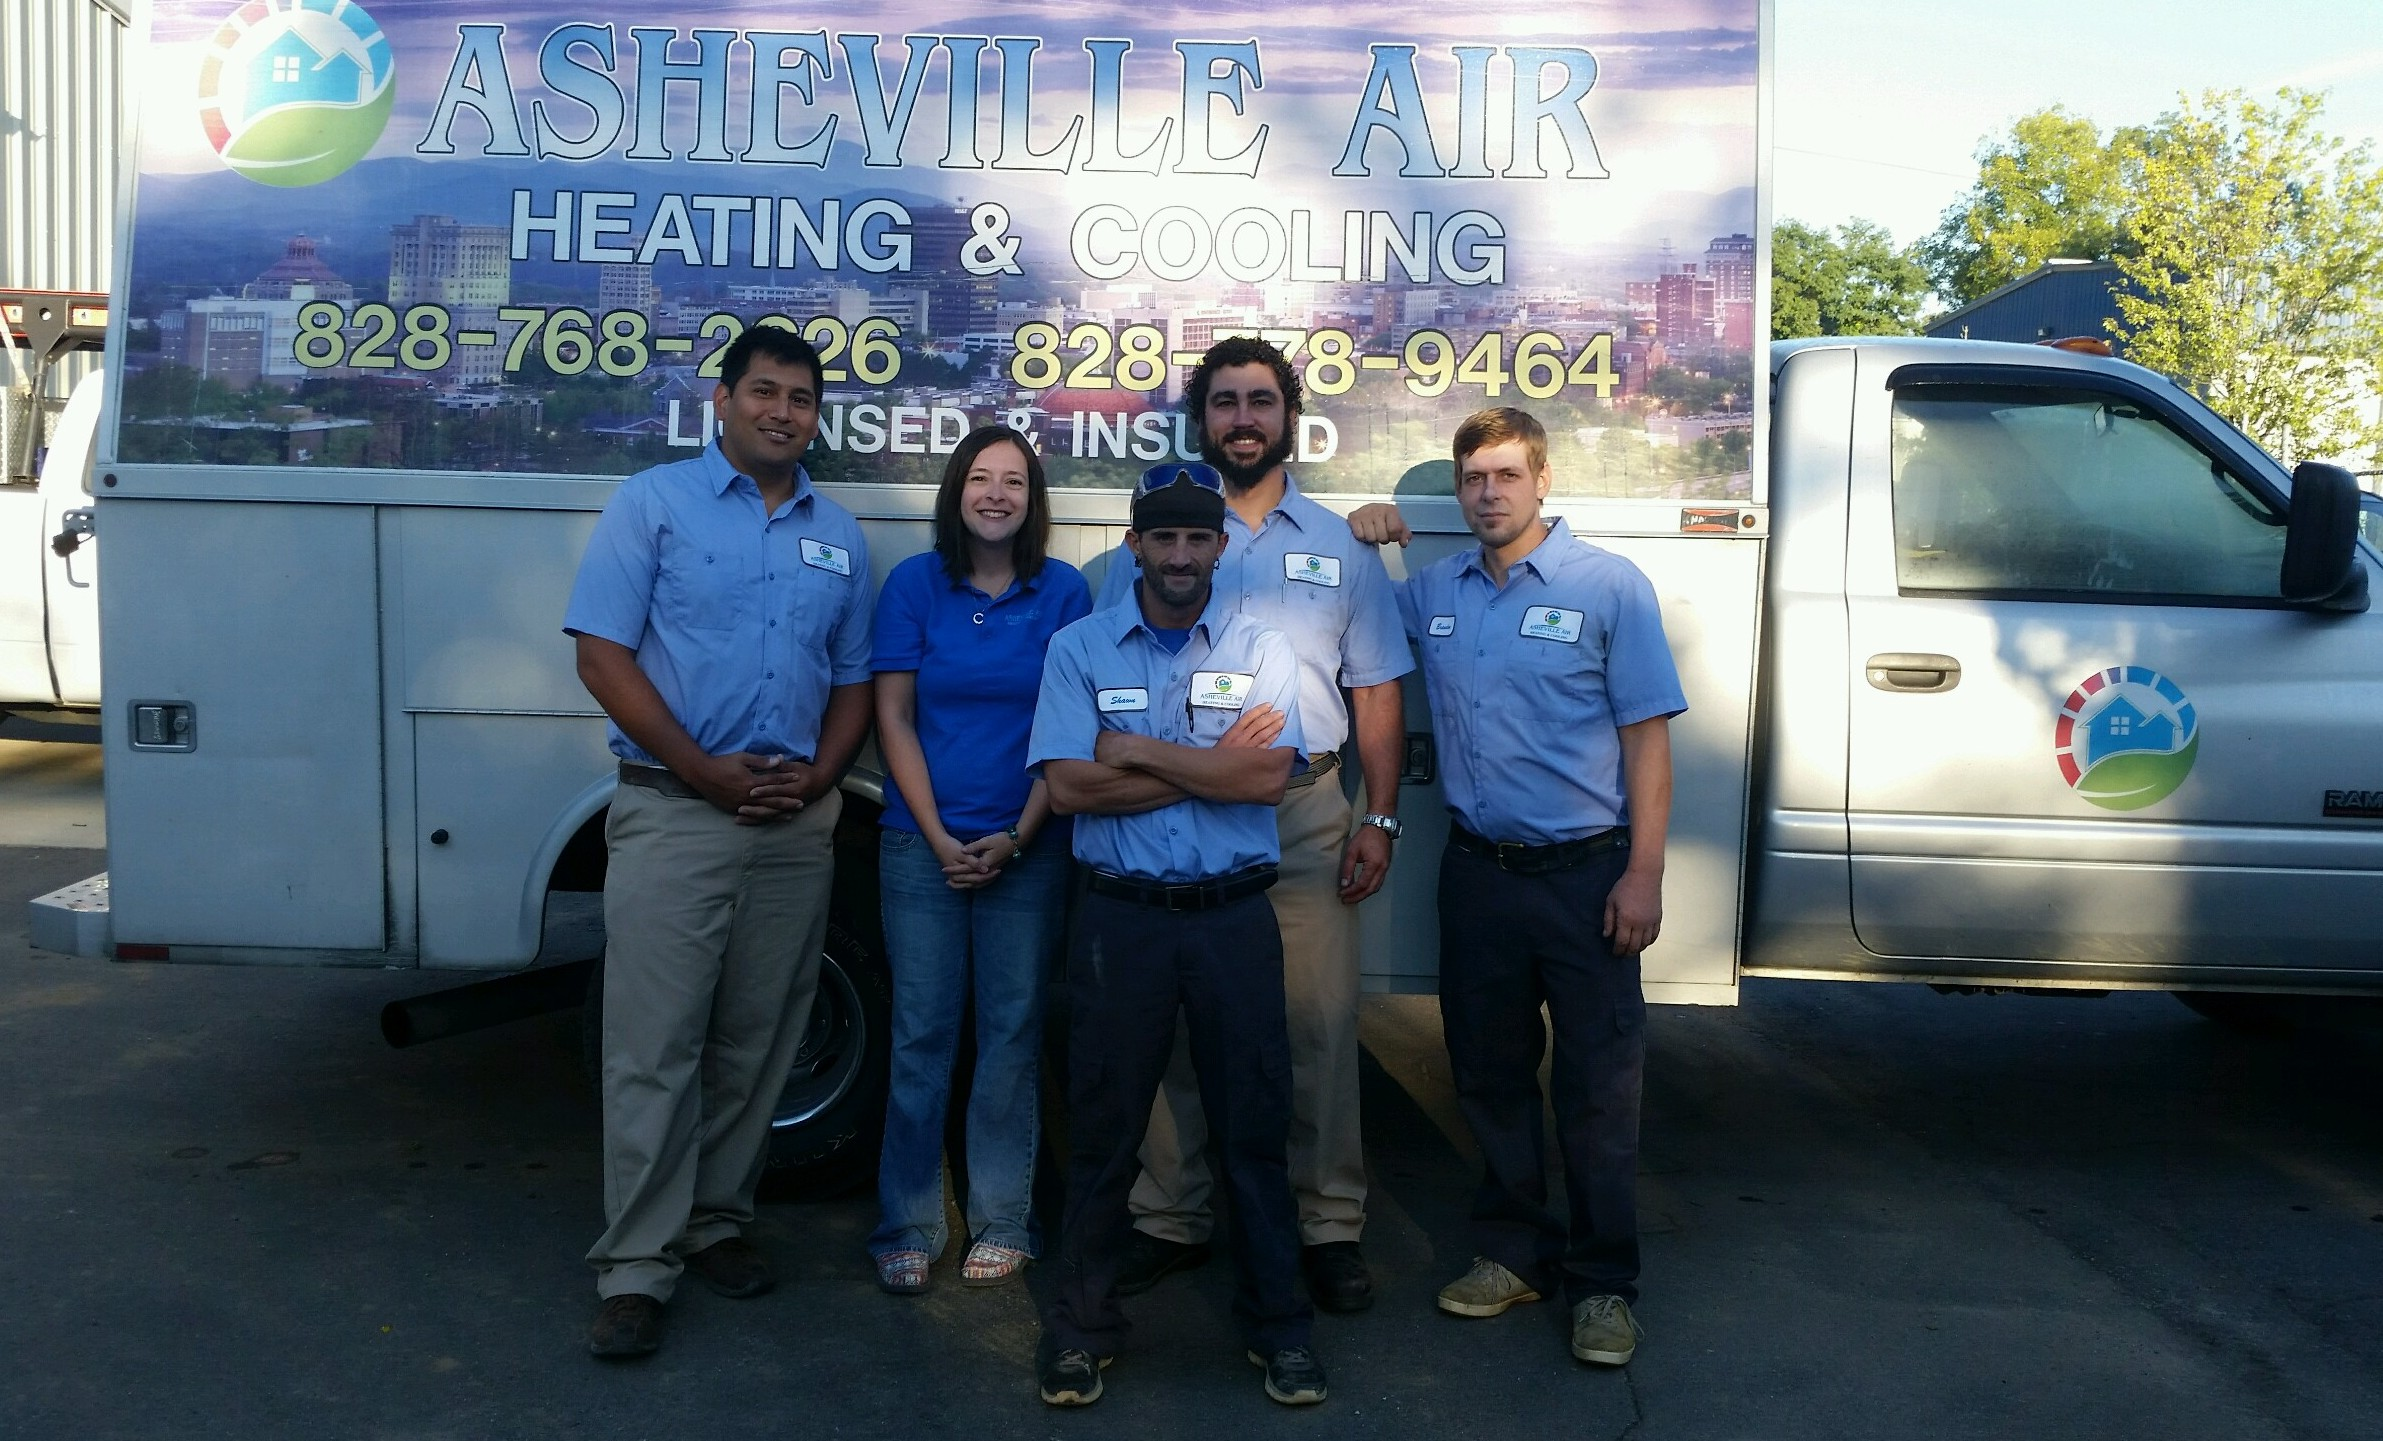 Asheville air heating and cooling 1486067491 mini magick20170202 10892 1f3he6r